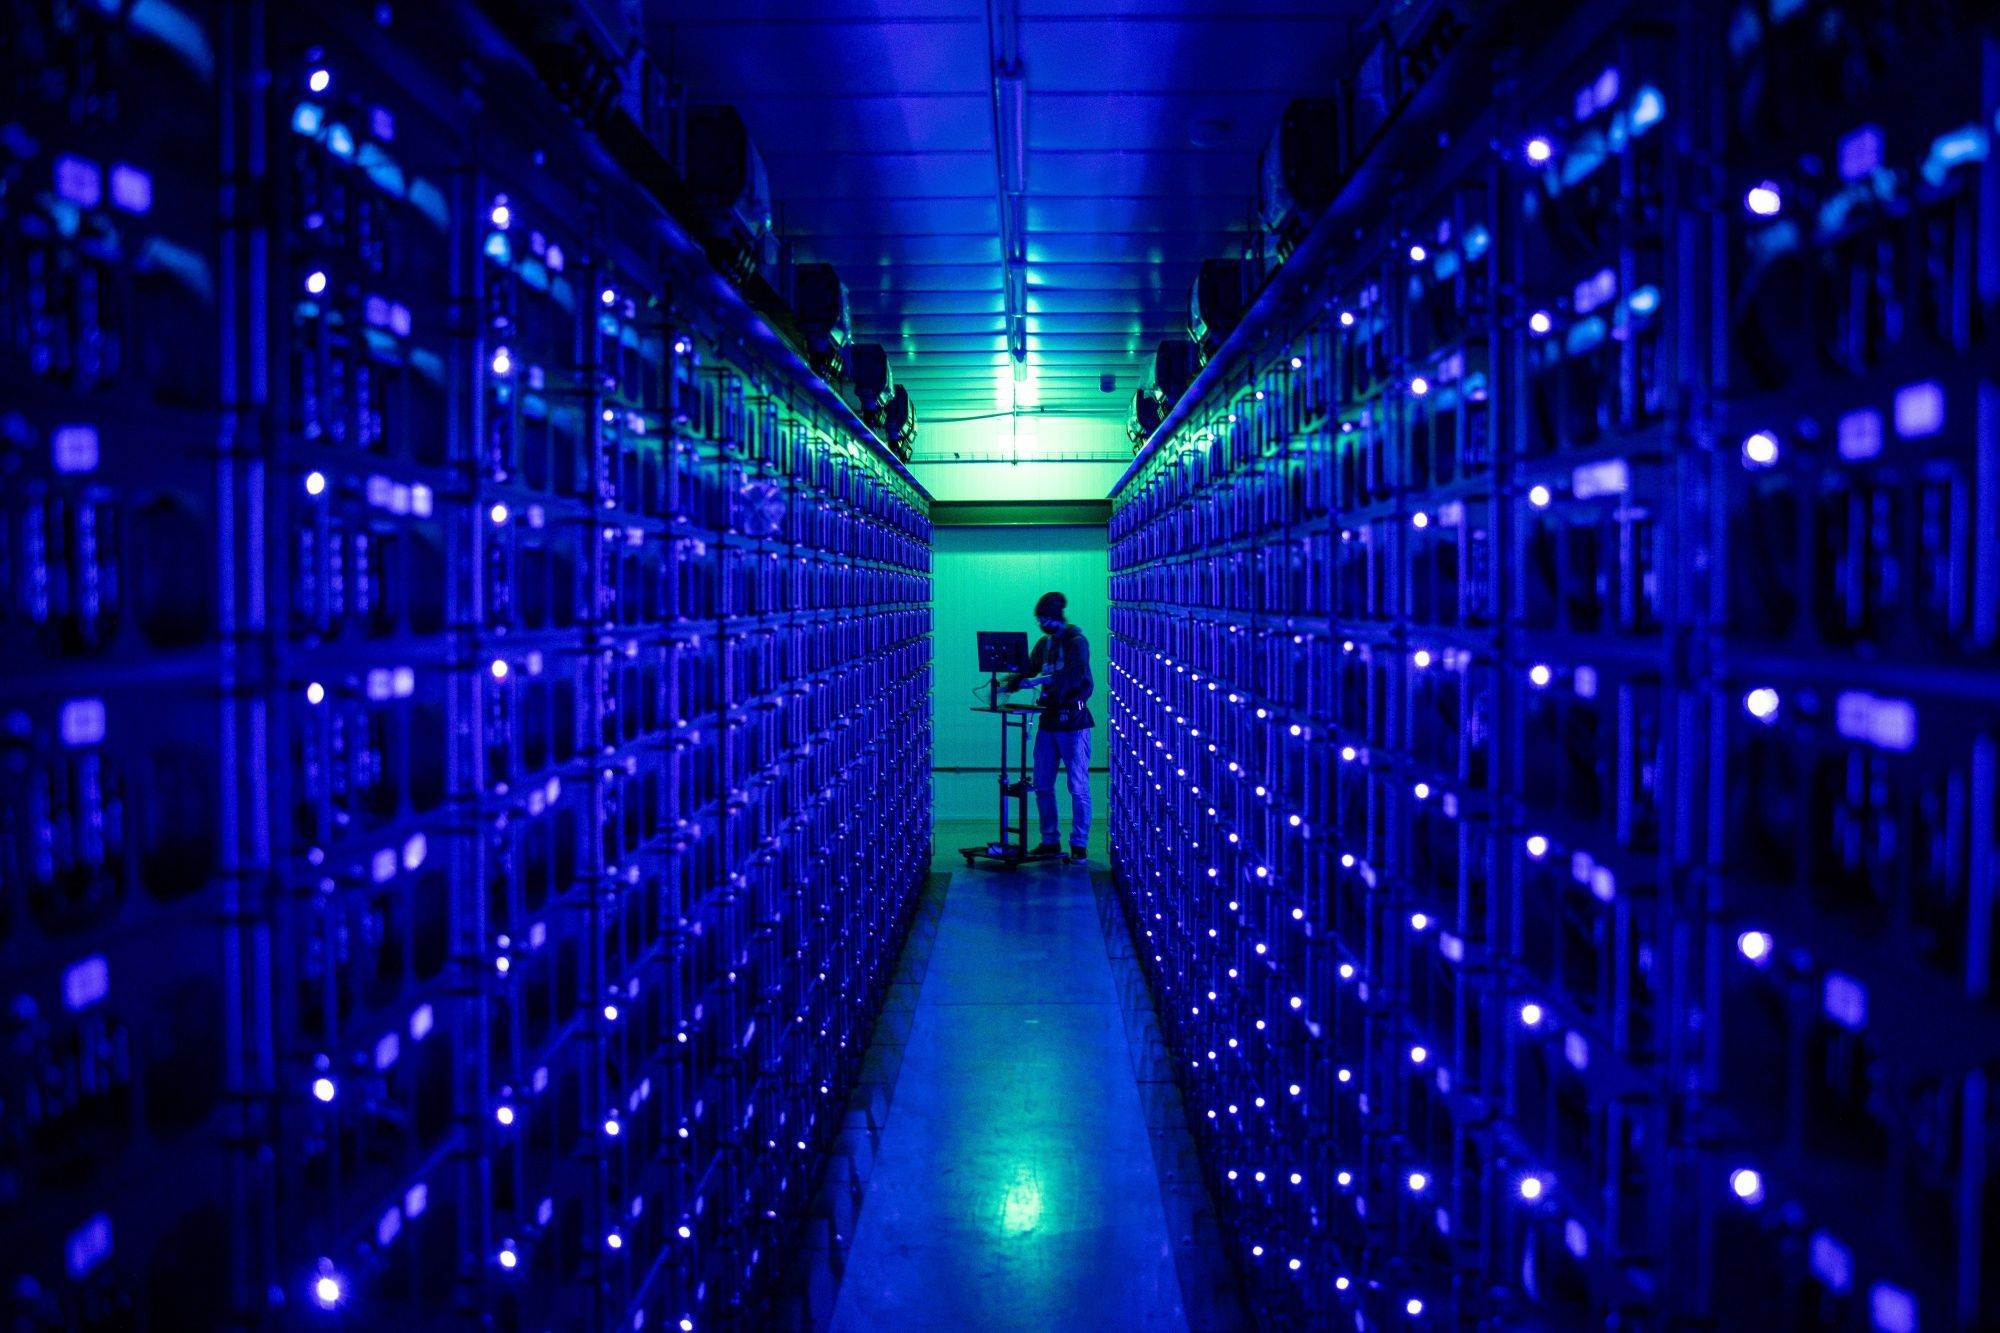 An engineer runs diagnostics on rigs mining the Ethereum and Zilliqa cryptocurrencies at the Evobits crypto farm in Cluj-Napoca, Romania, on Wednesday, Jan. 22, 2021. The world's second-most-valuable cryptocurrency, Ethereum, rallied 75% this year, outpacing its larger rival Bitcoin. Photographer: Akos Stiller/Bloomberg